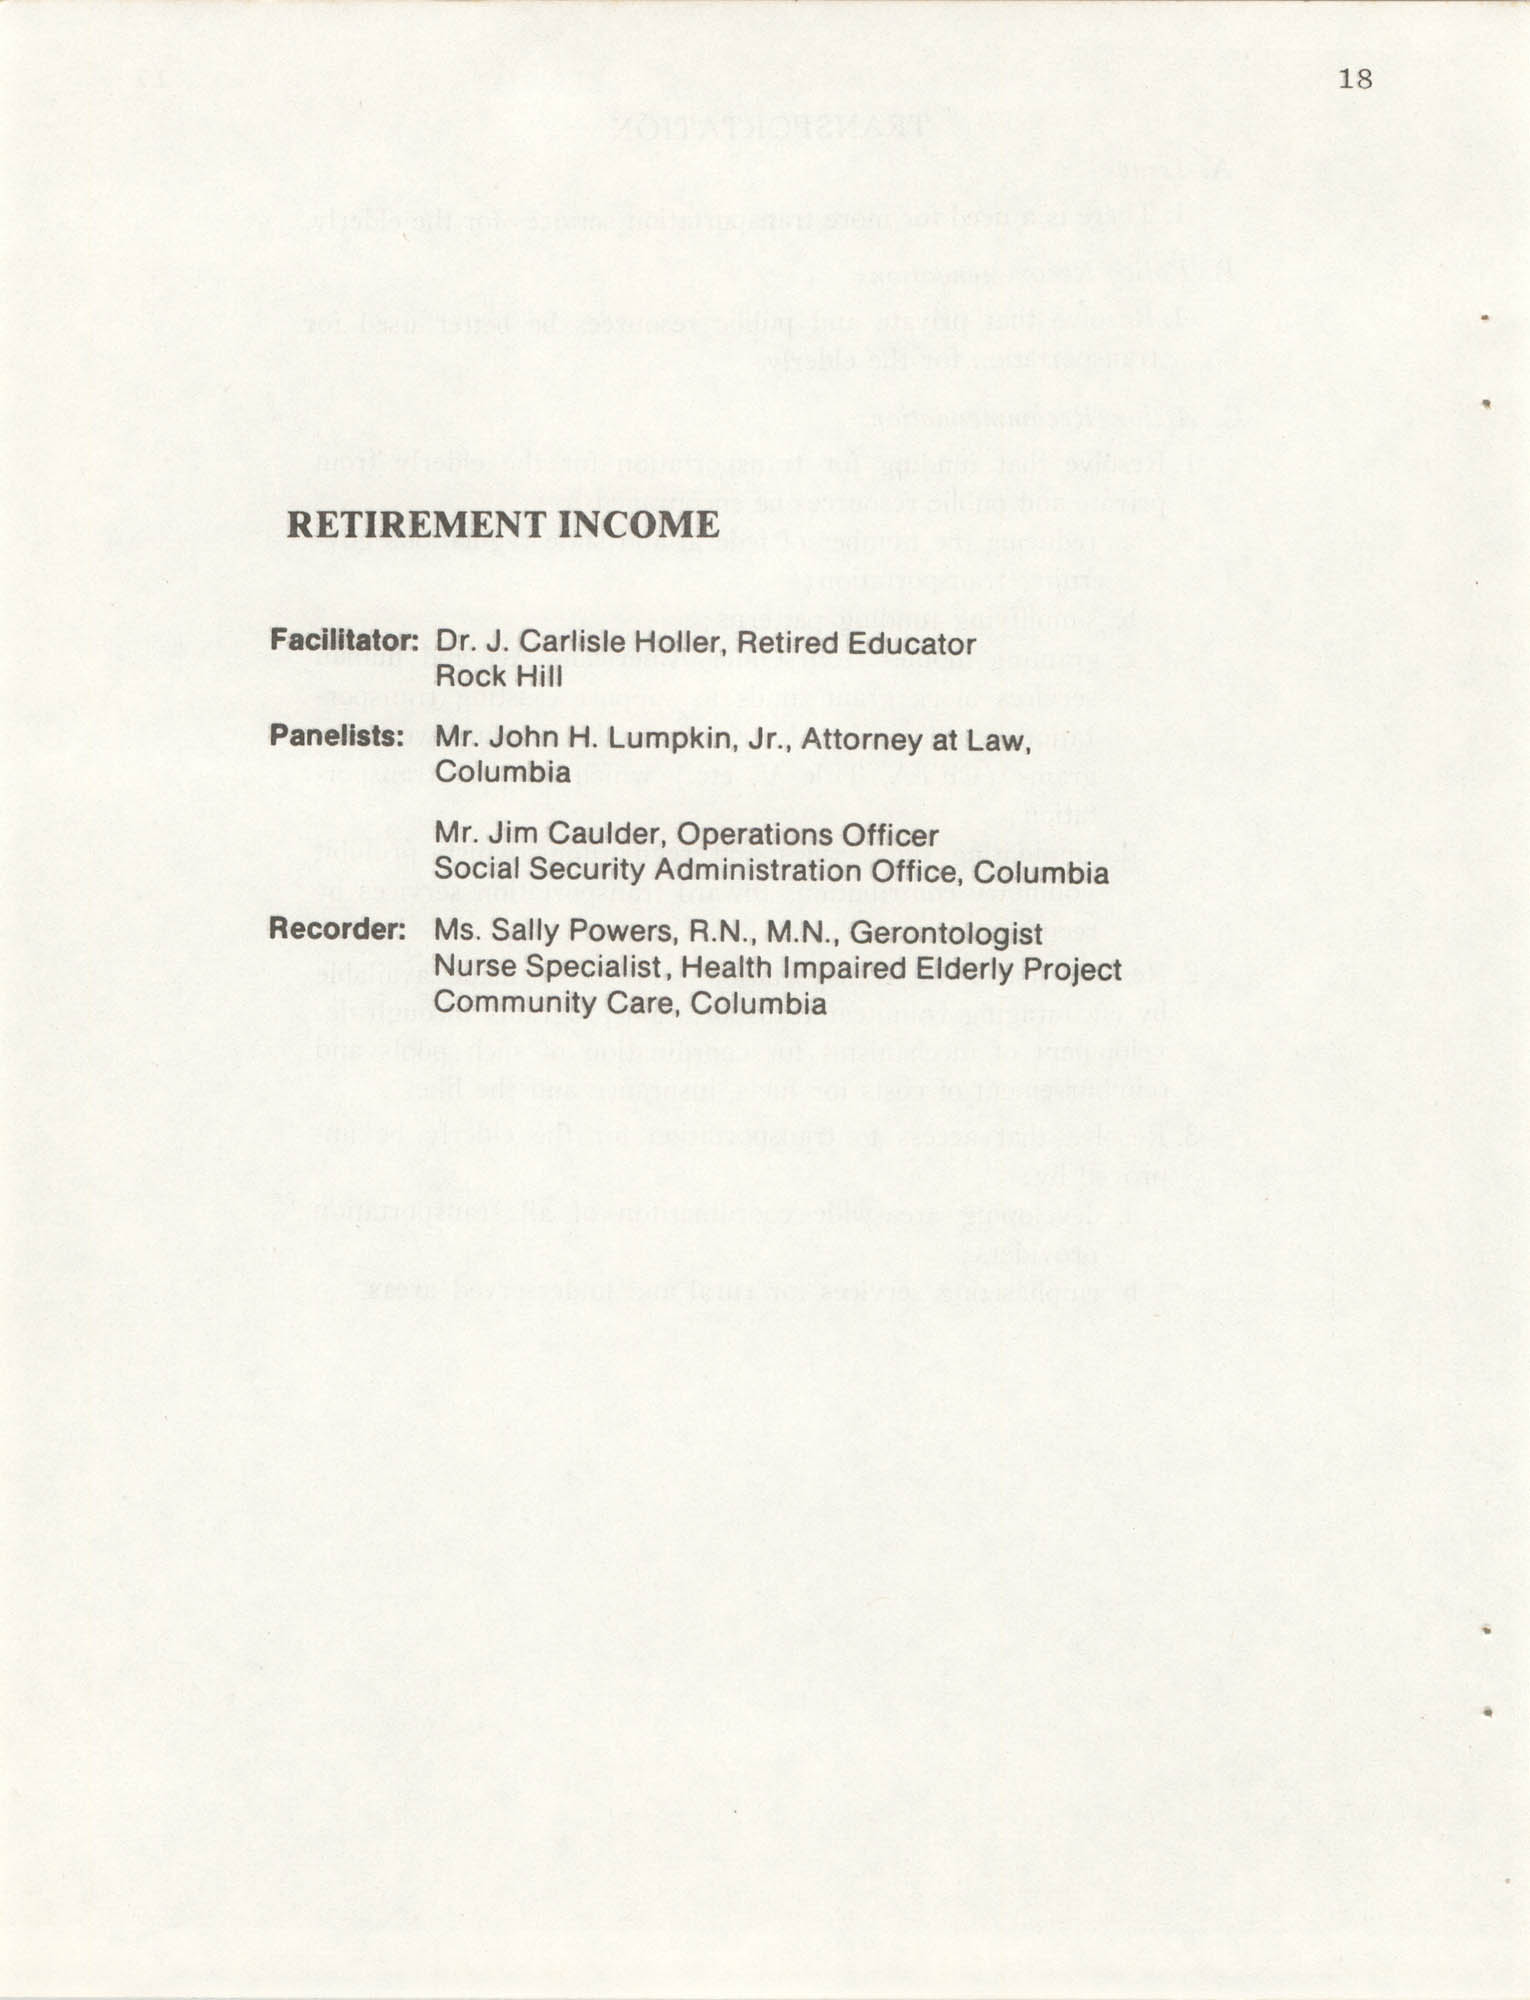 South Carolina Governor's White House Conference on Aging Proceedings, 1981, Page 18